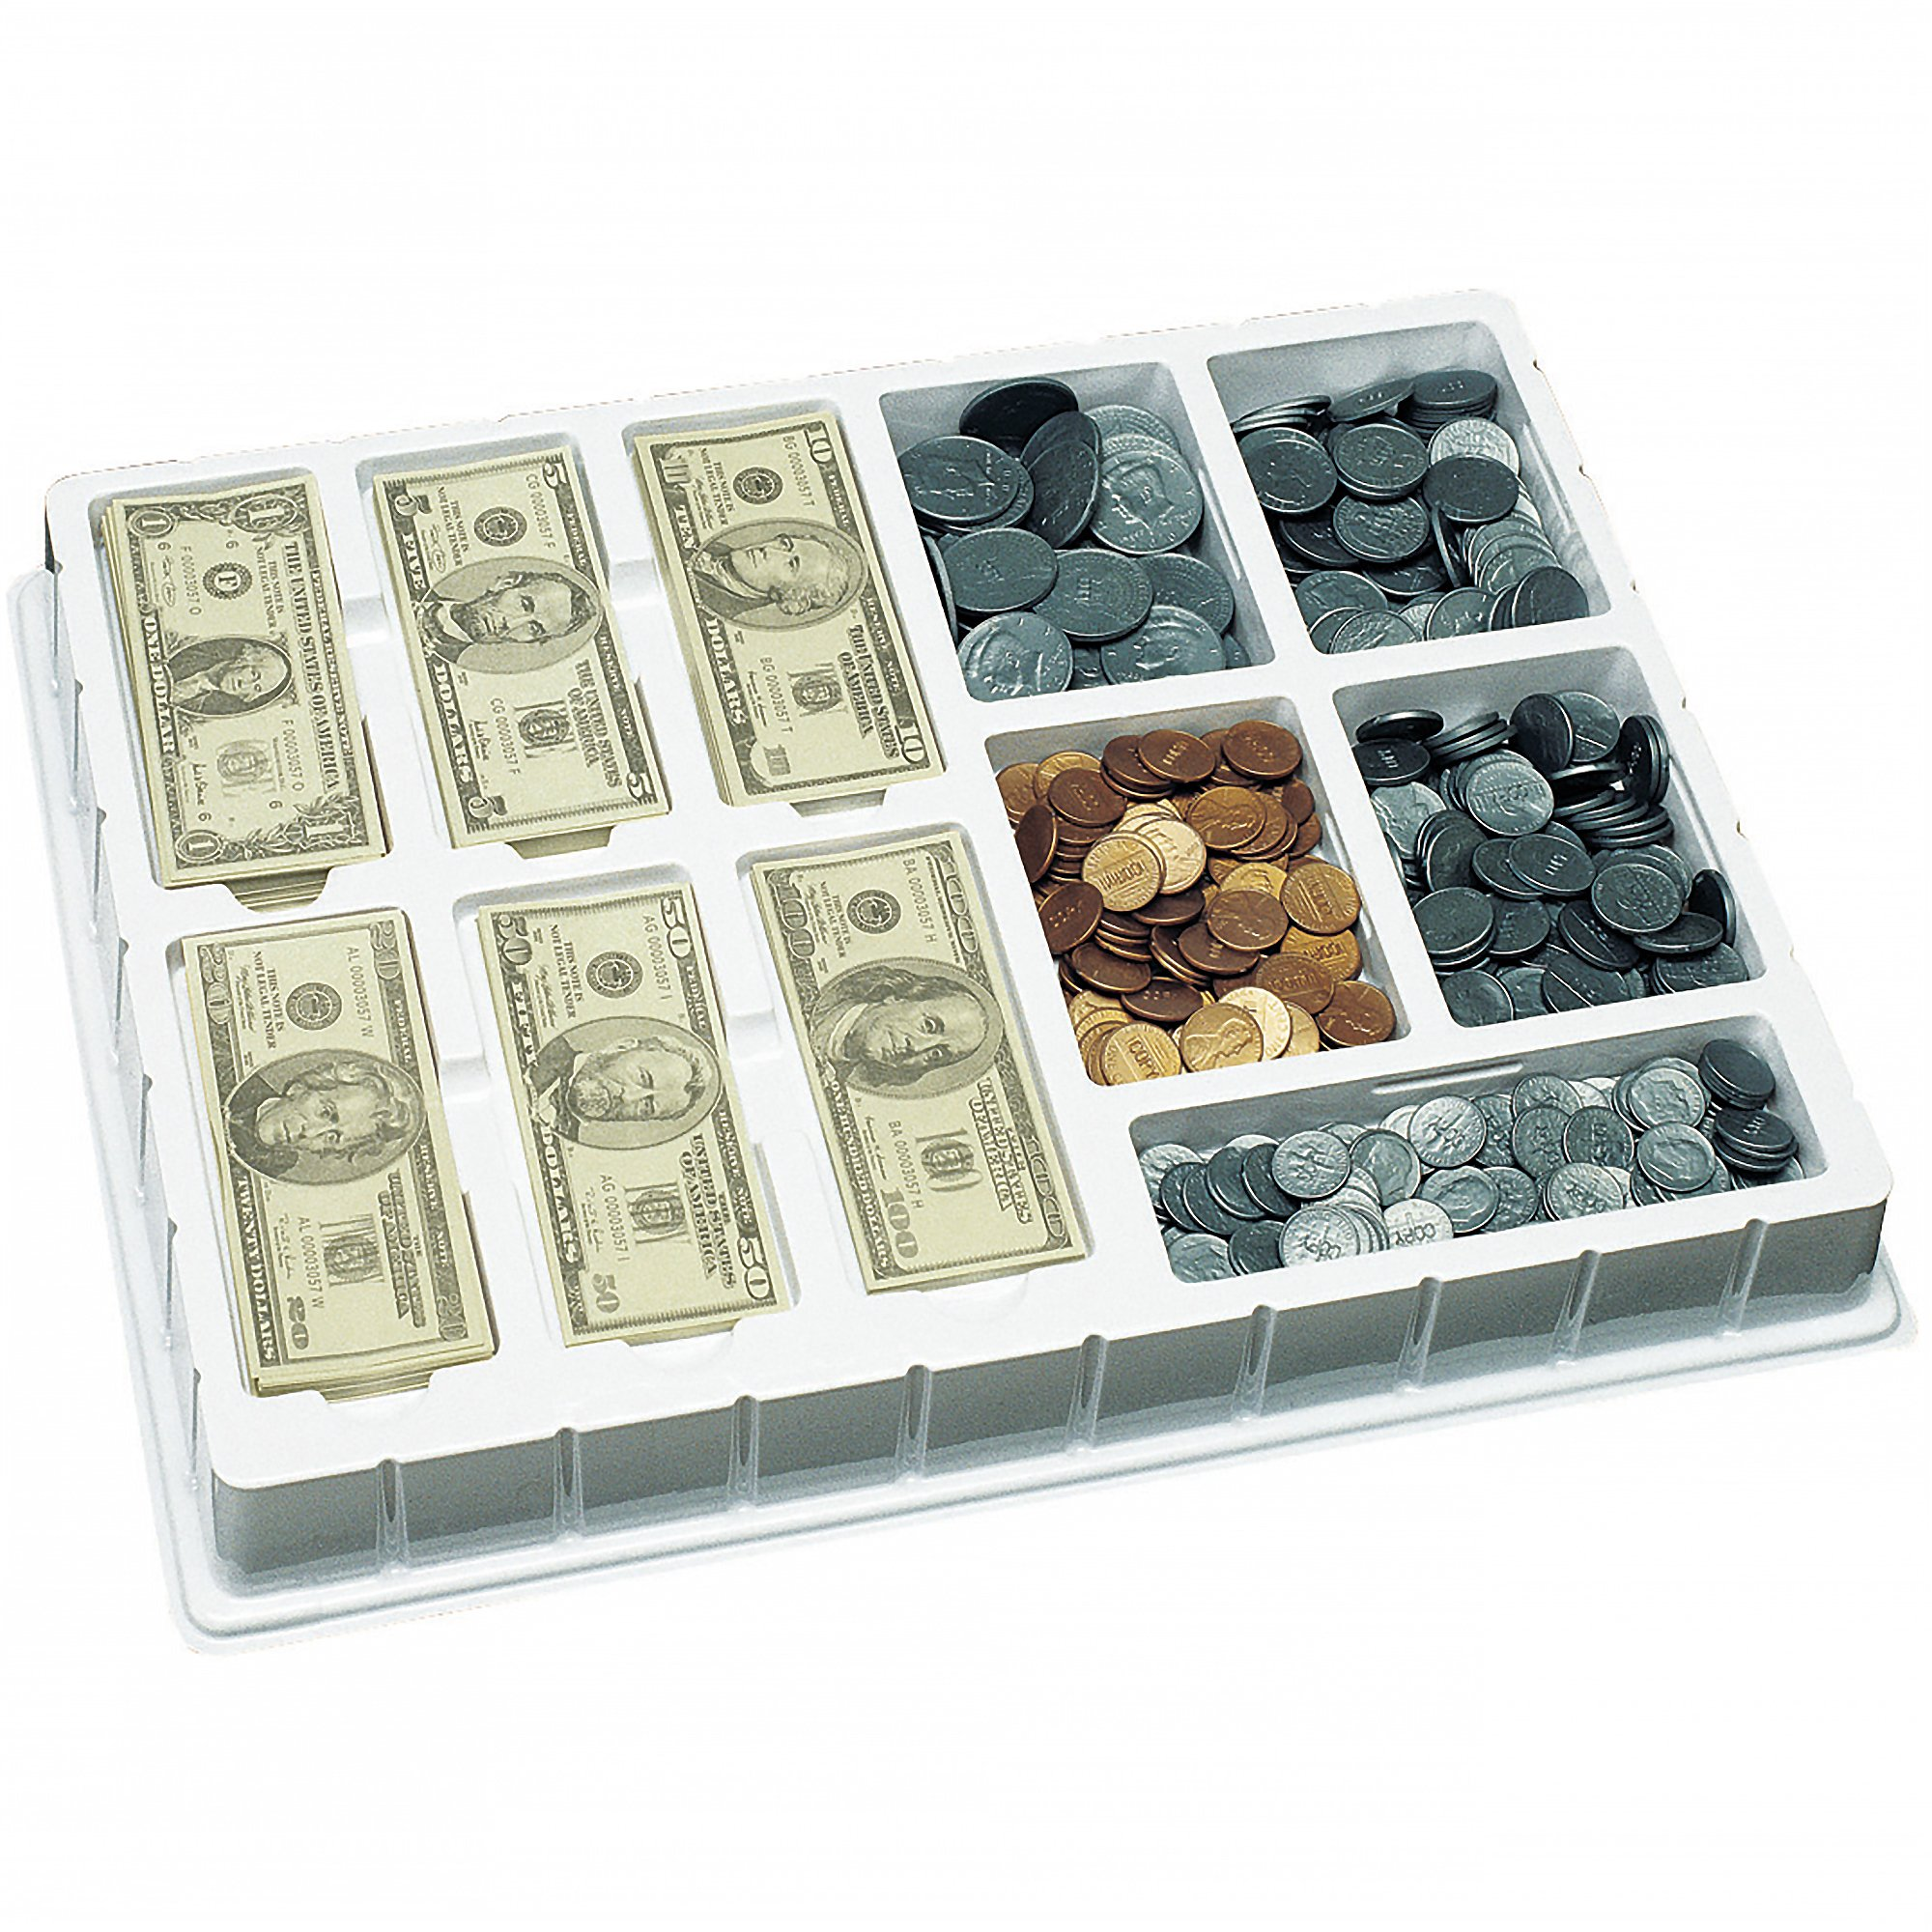 Educational Insights Play Money Coins & Bills Deluxe Set, Ages 5 and Up, (750 pieces and Deluxe Storage Tray) by Educational Insights